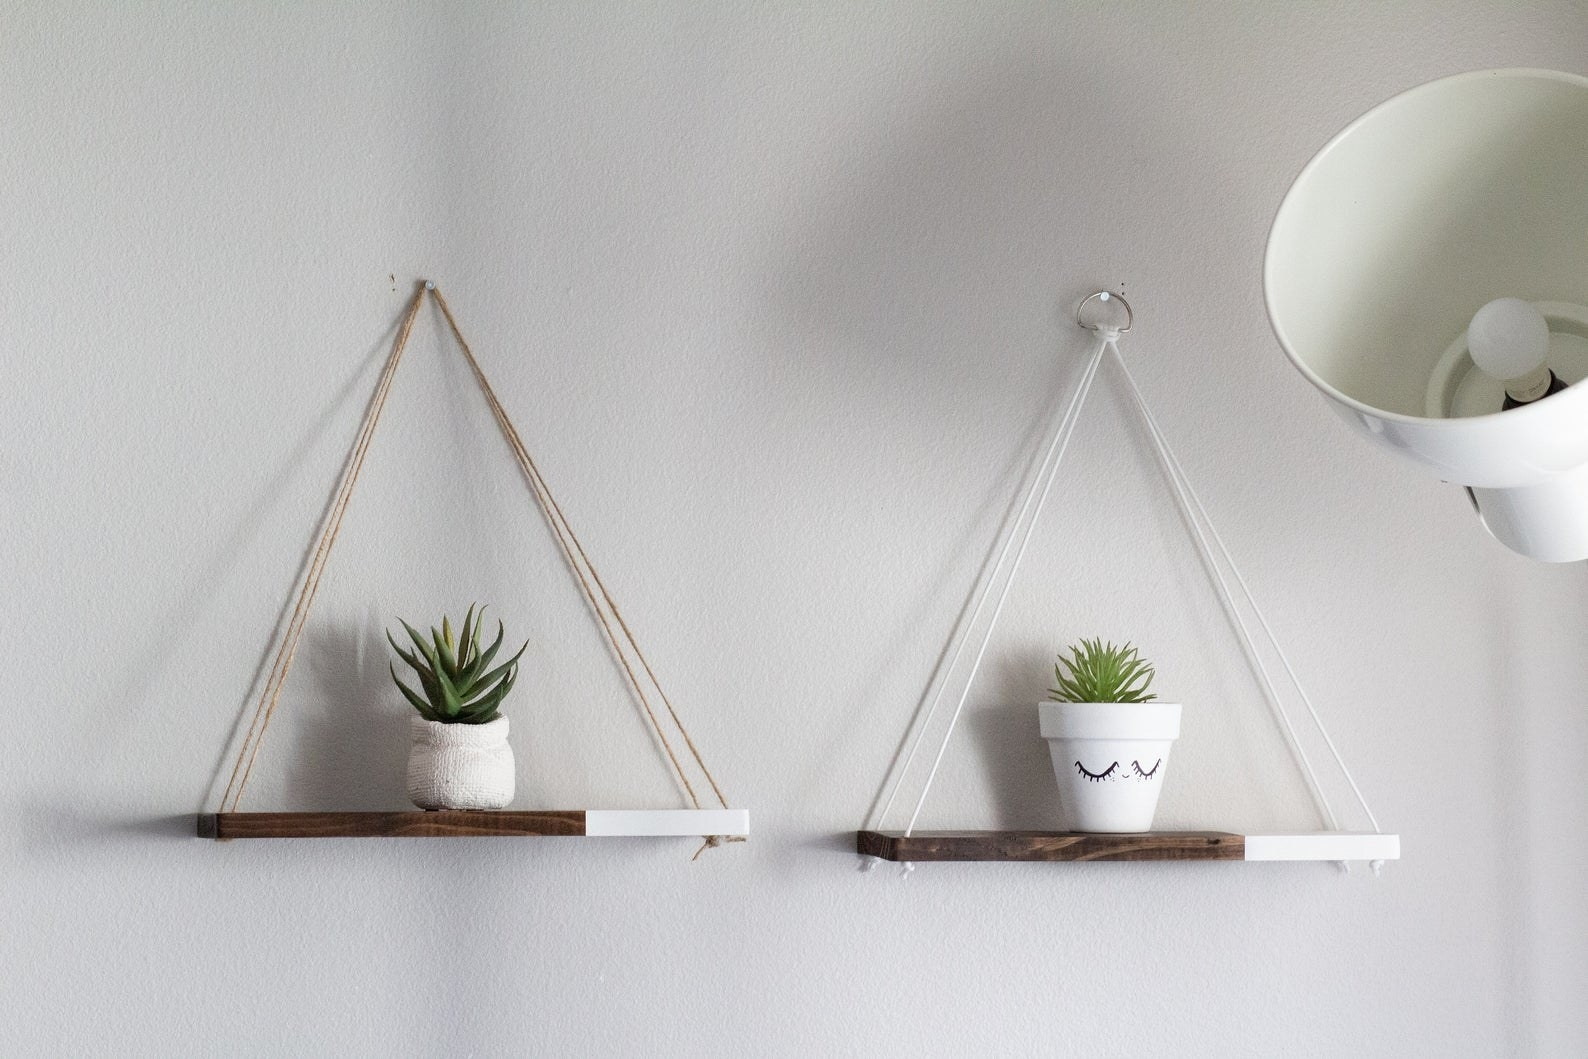 two hanging wood shelves with planters on top